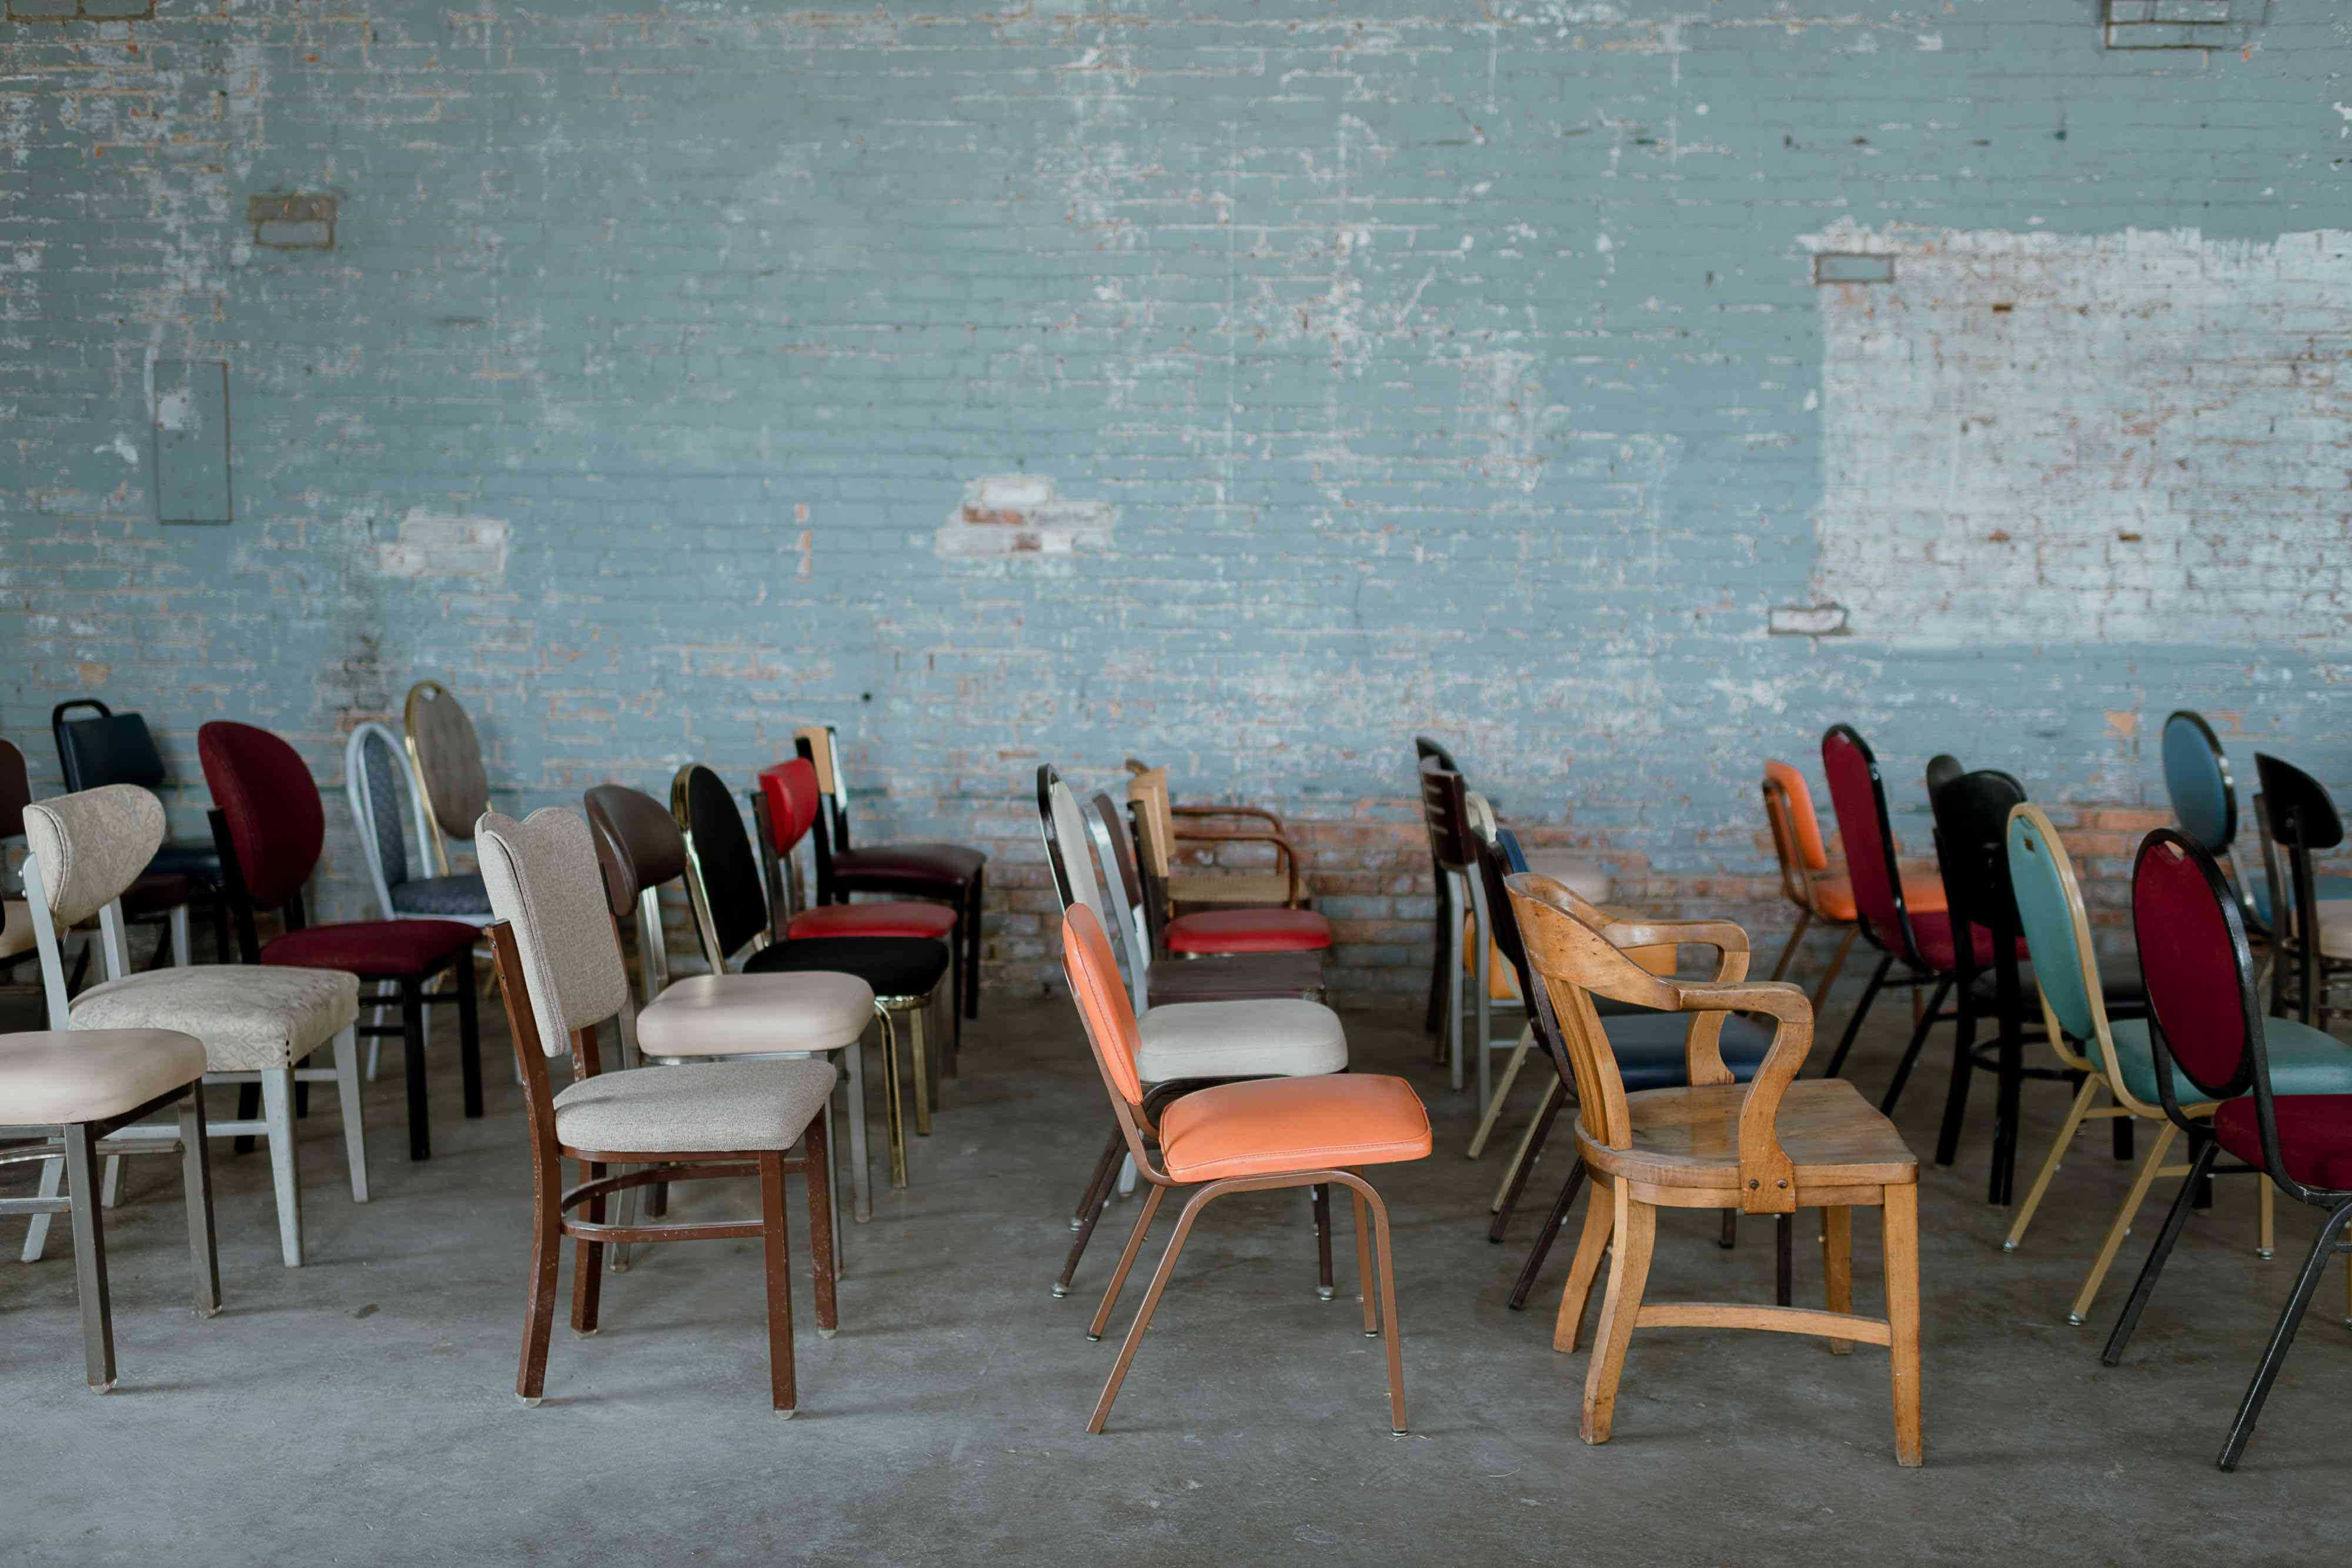 <p>mismatched ceremony chairs</p><br><br>